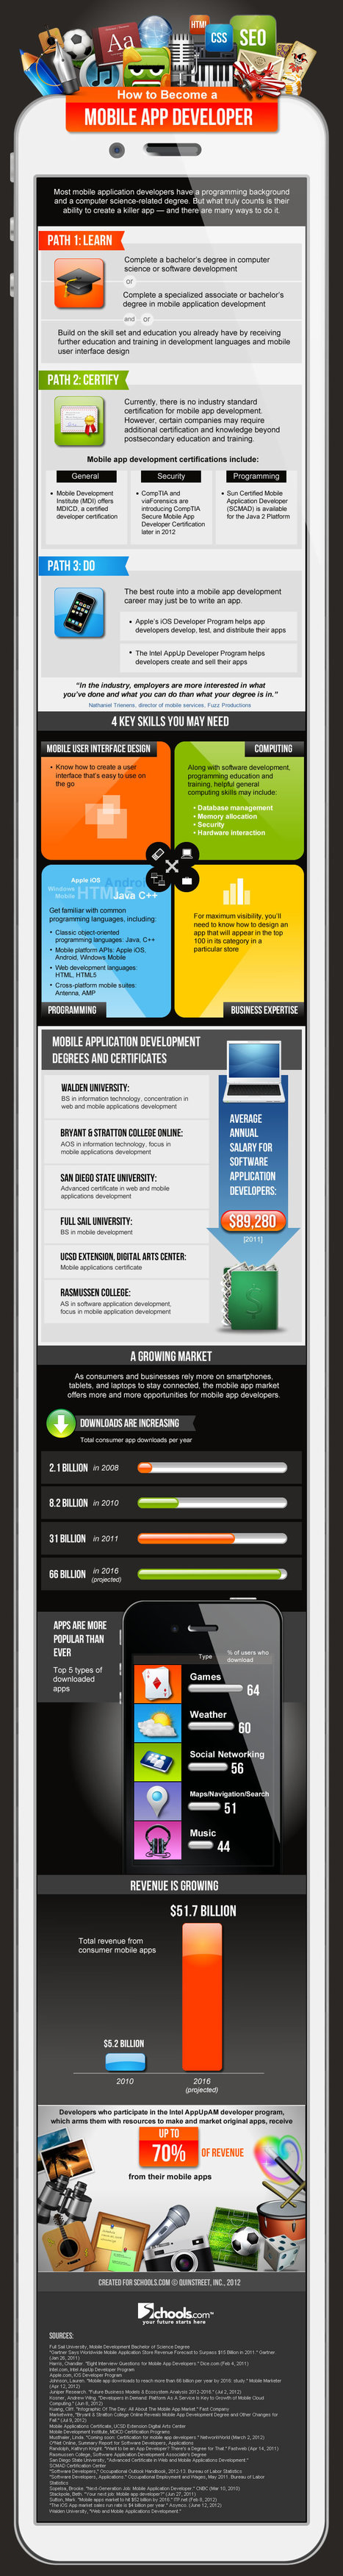 10+ Step by Step Guide to become Expert Mobile App Developer | All Infographics | Scoop.it